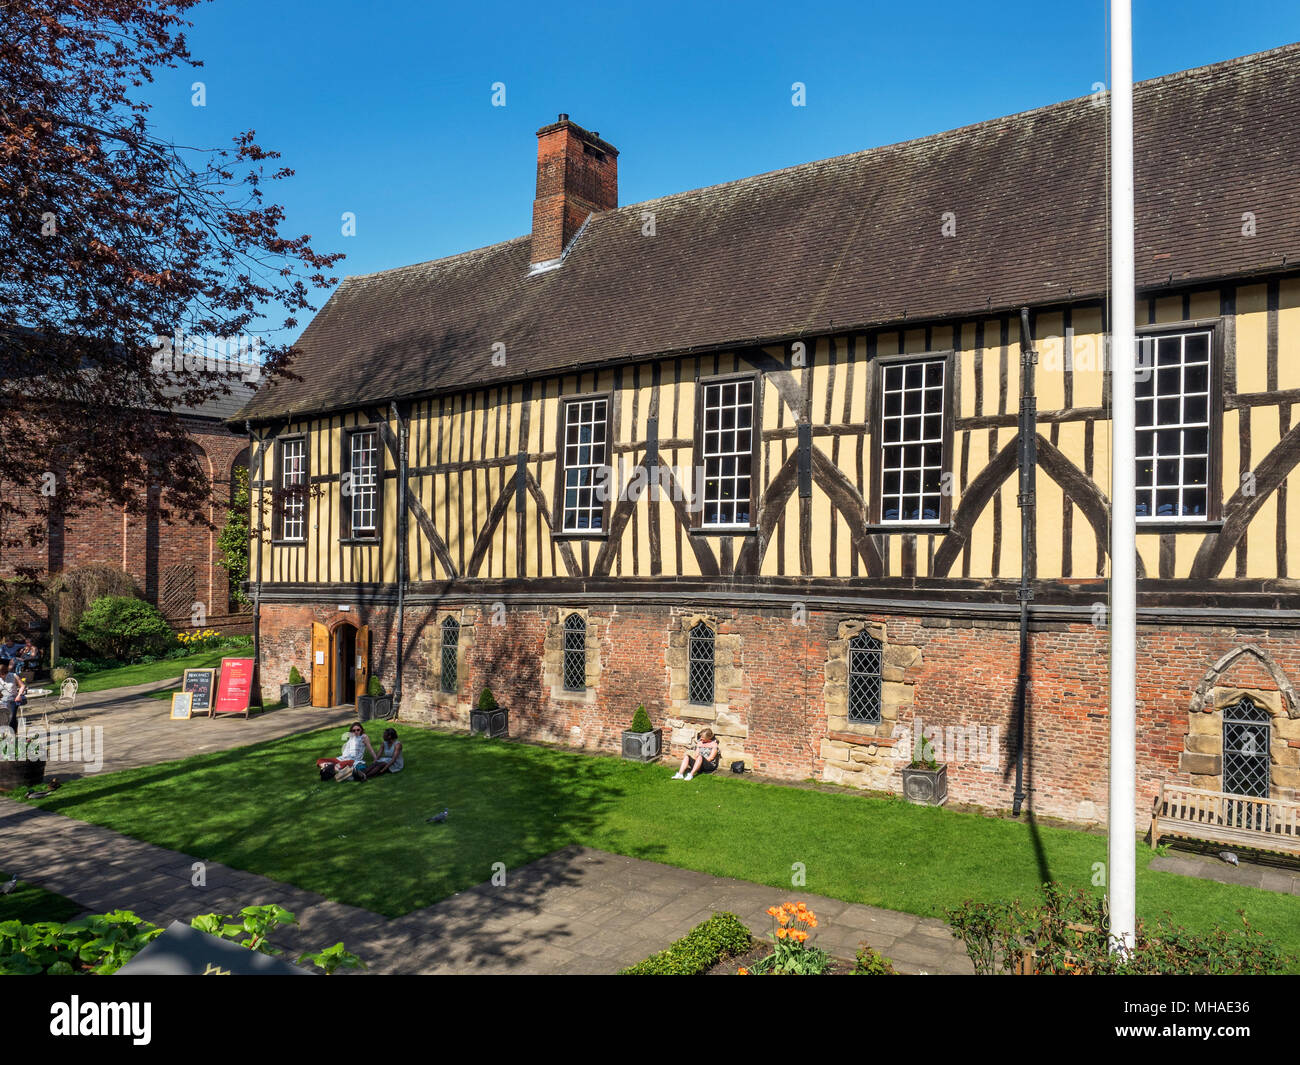 The Merchant Adventurers Hall a historic medieval guildhall in York Yorkshire England - Stock Image